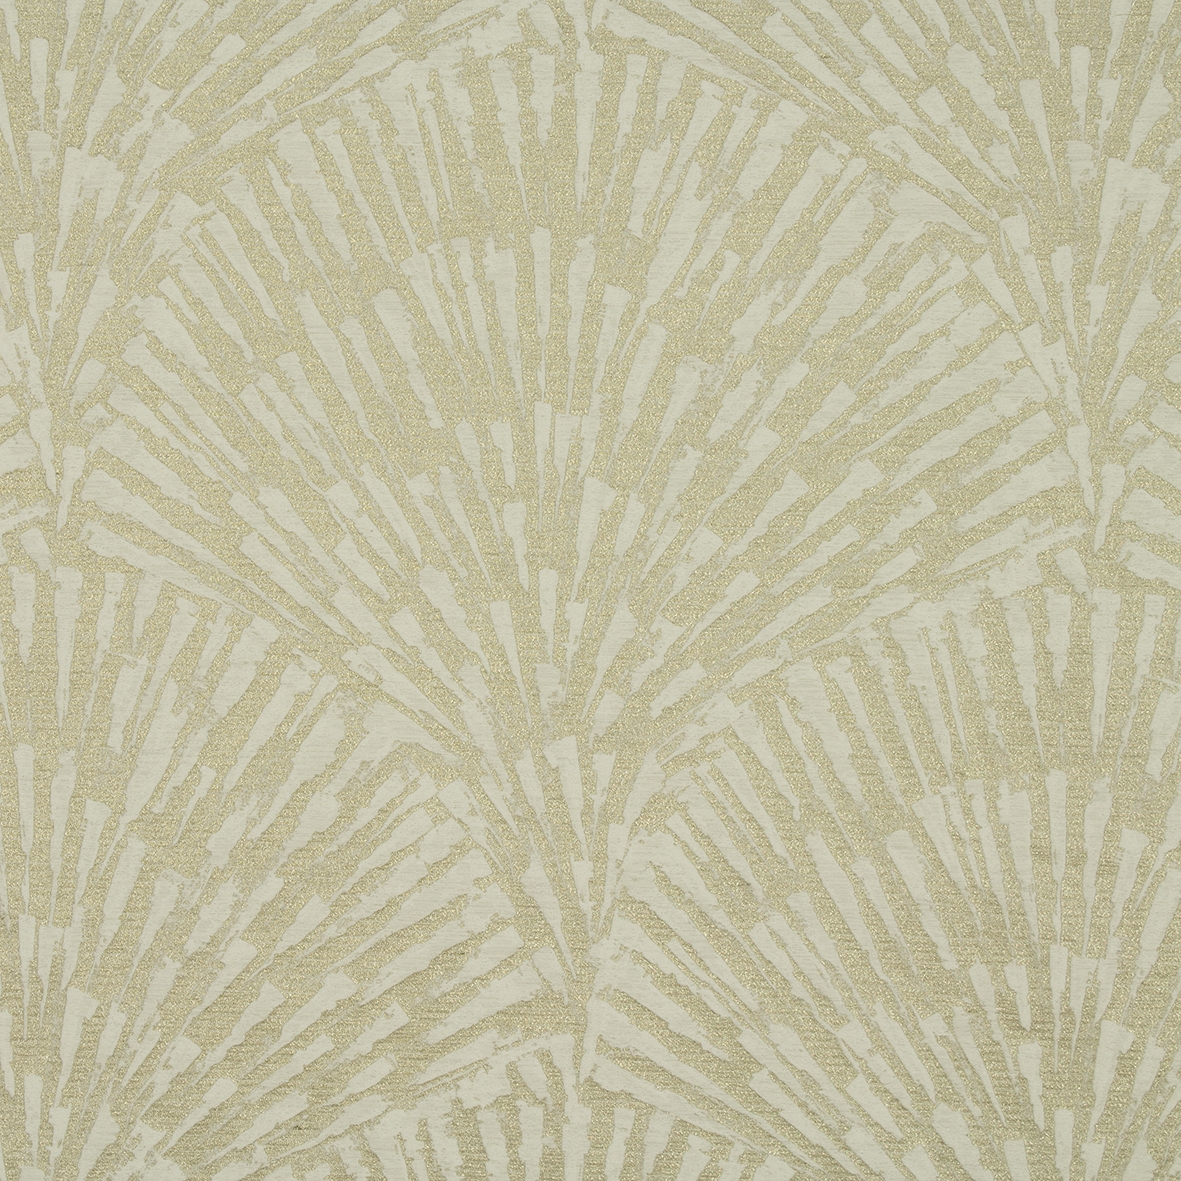 Zelva Gold Roman Blind Patterned Roman Blinds Roman Blinds Intended For Gold Roman Blinds (Image 15 of 15)